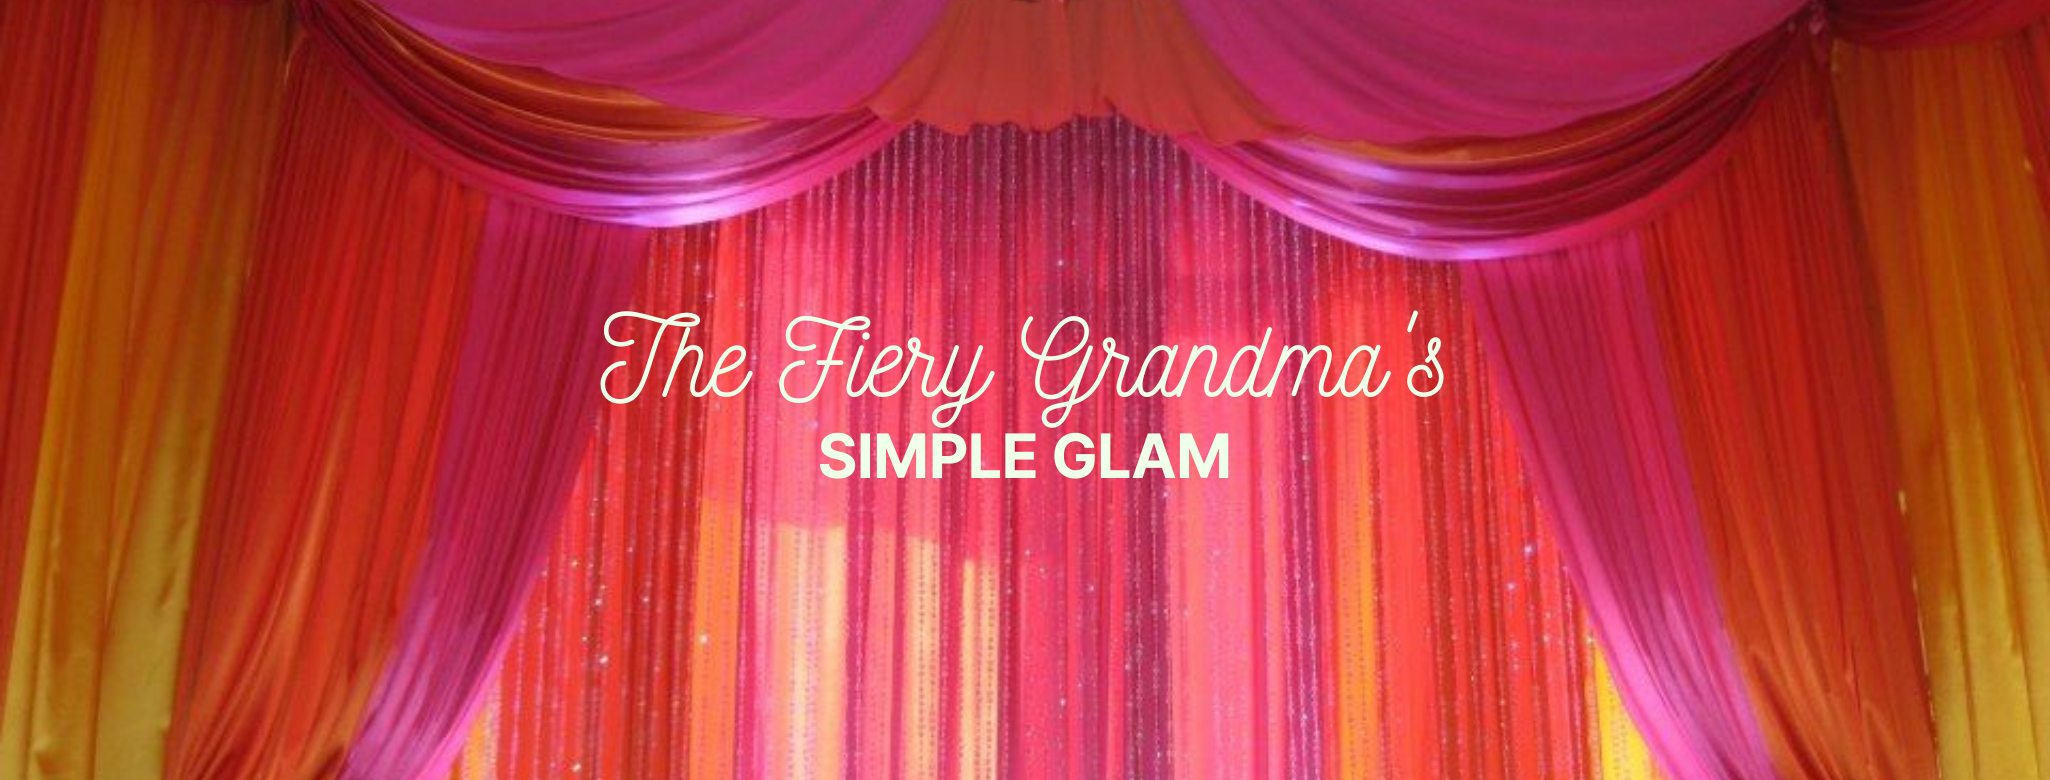 The Fiery Grandma's Simple Glam